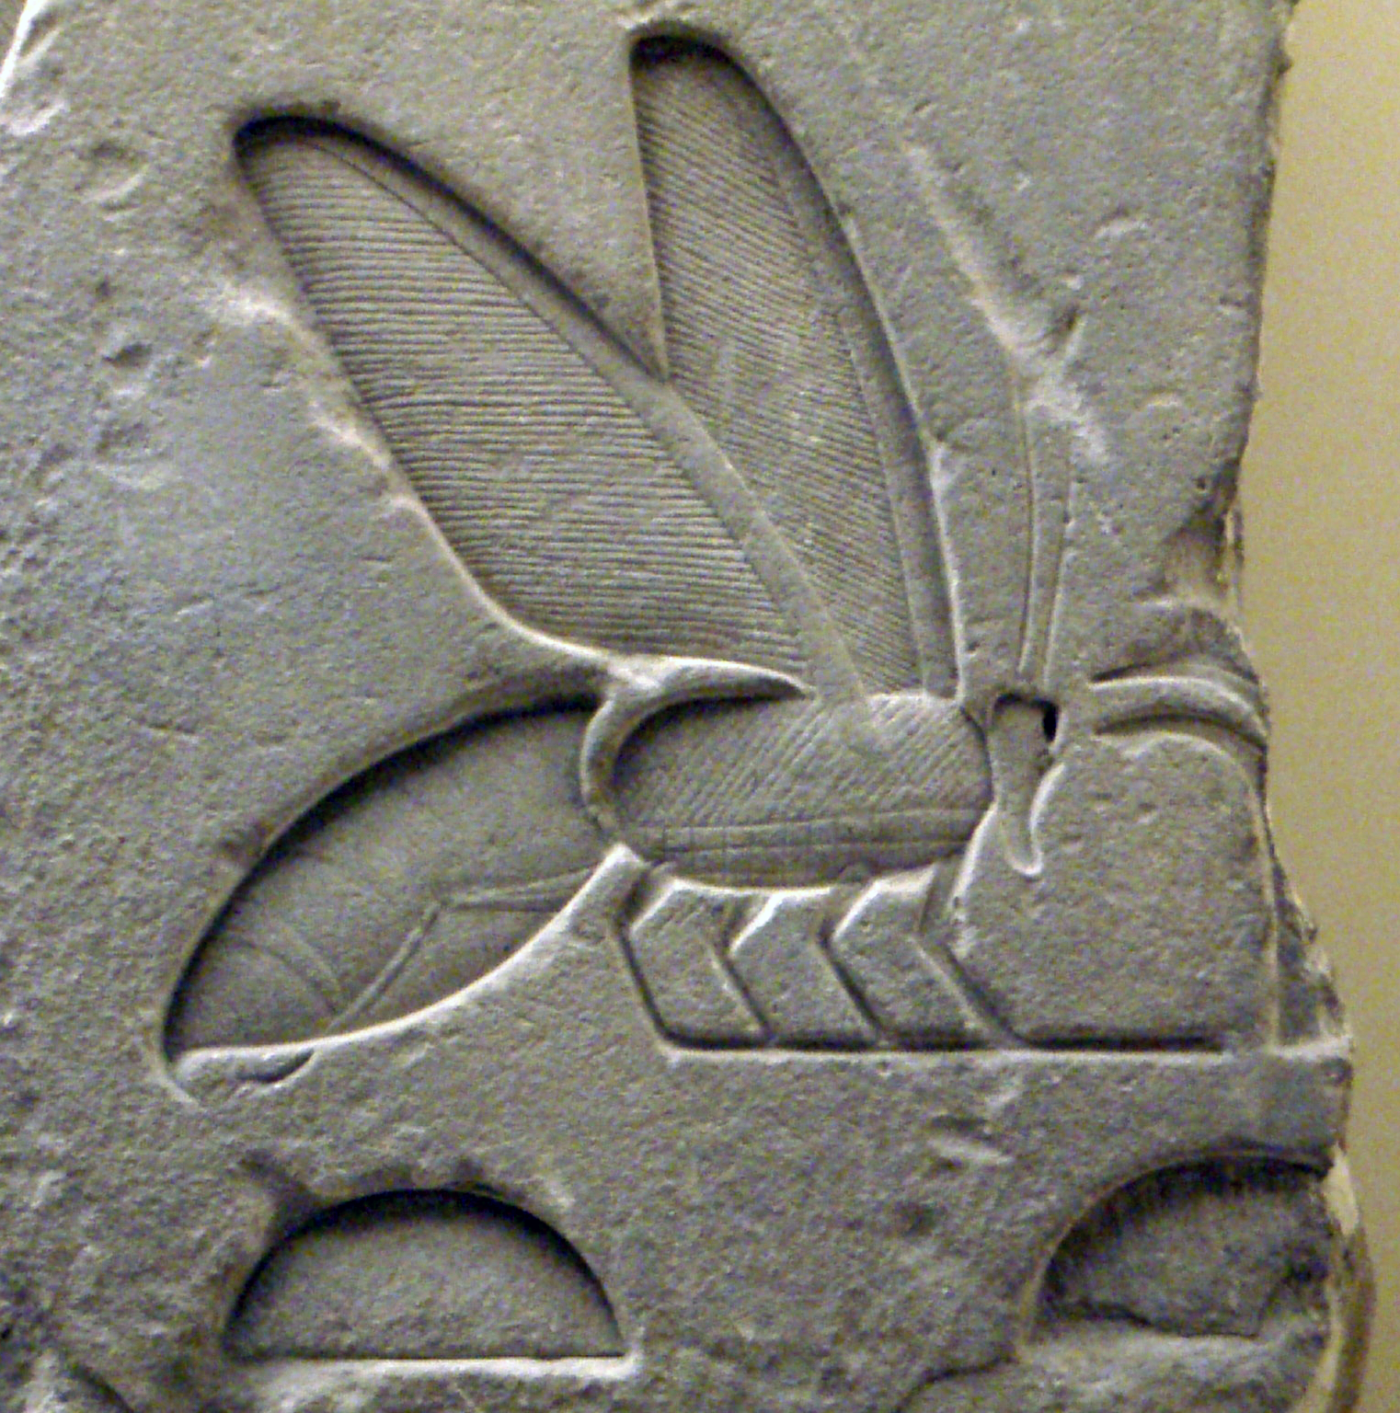 Rock art was all the buzz back in the day.